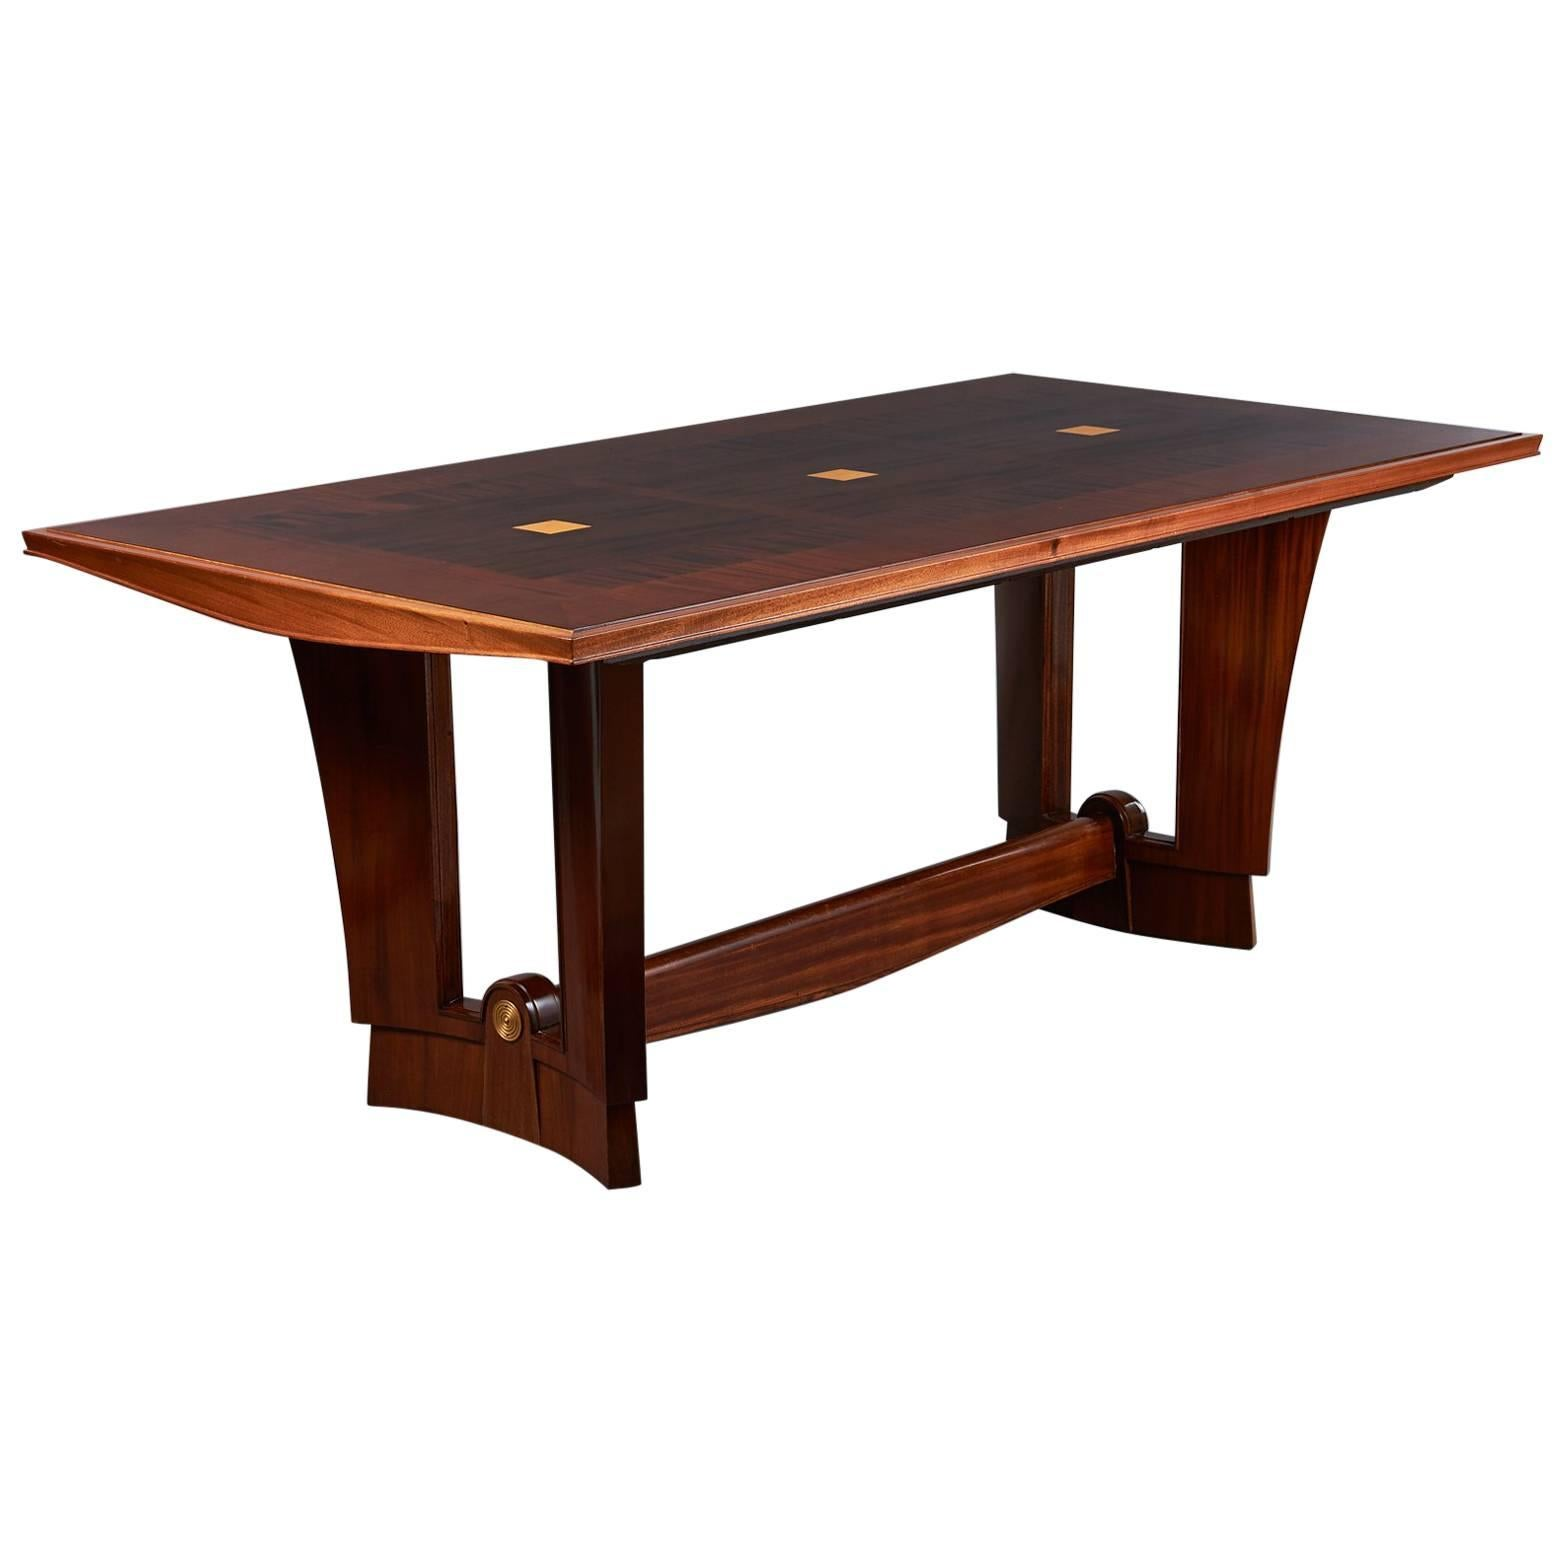 Maxime Old Centre or Dining Table, France, 1940s